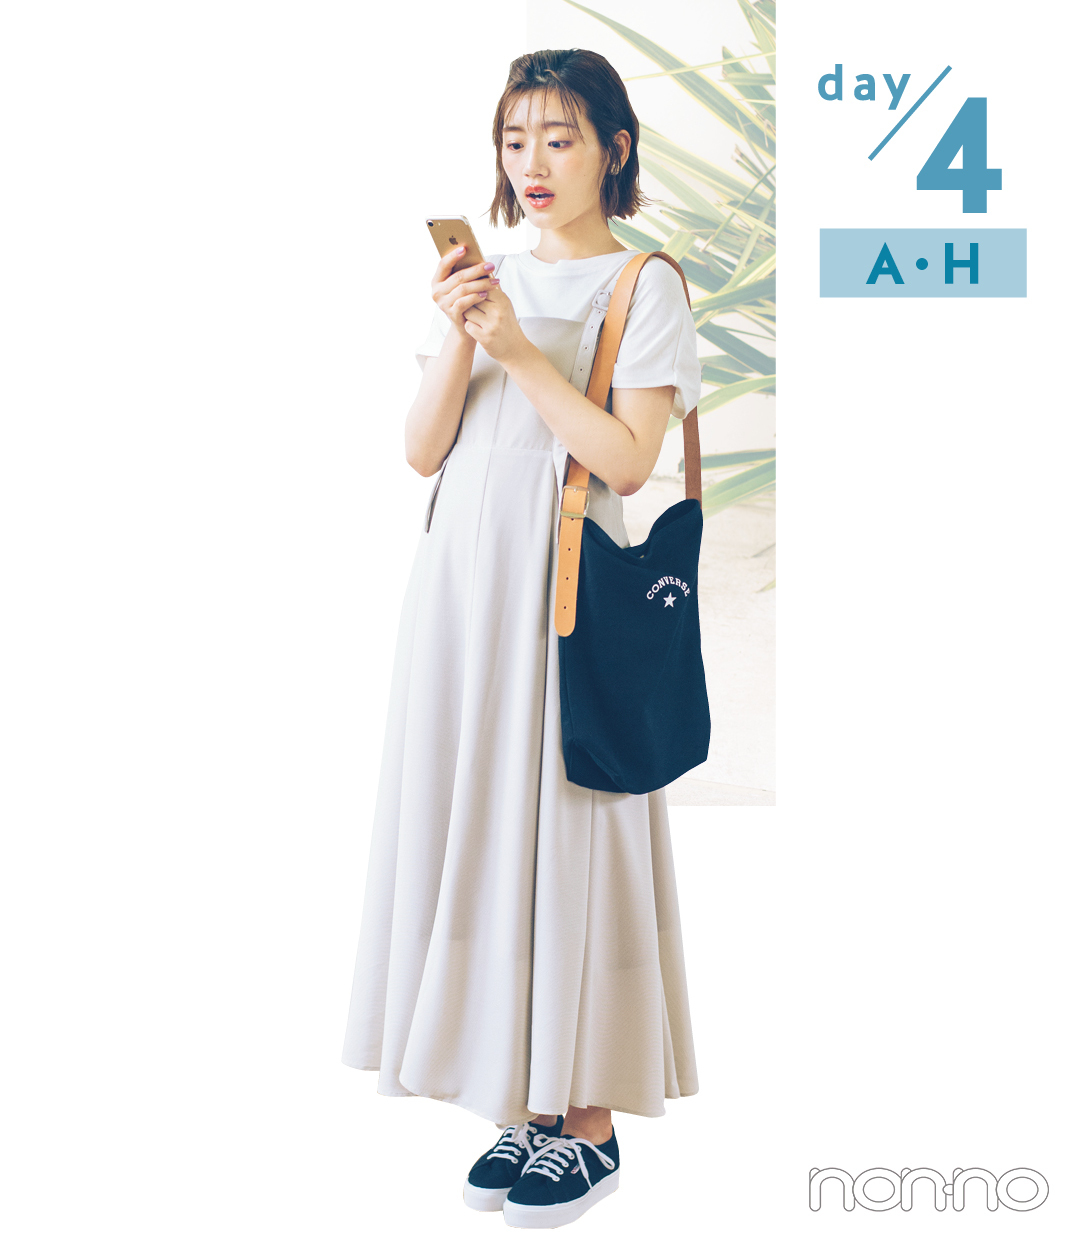 day/4 A・H